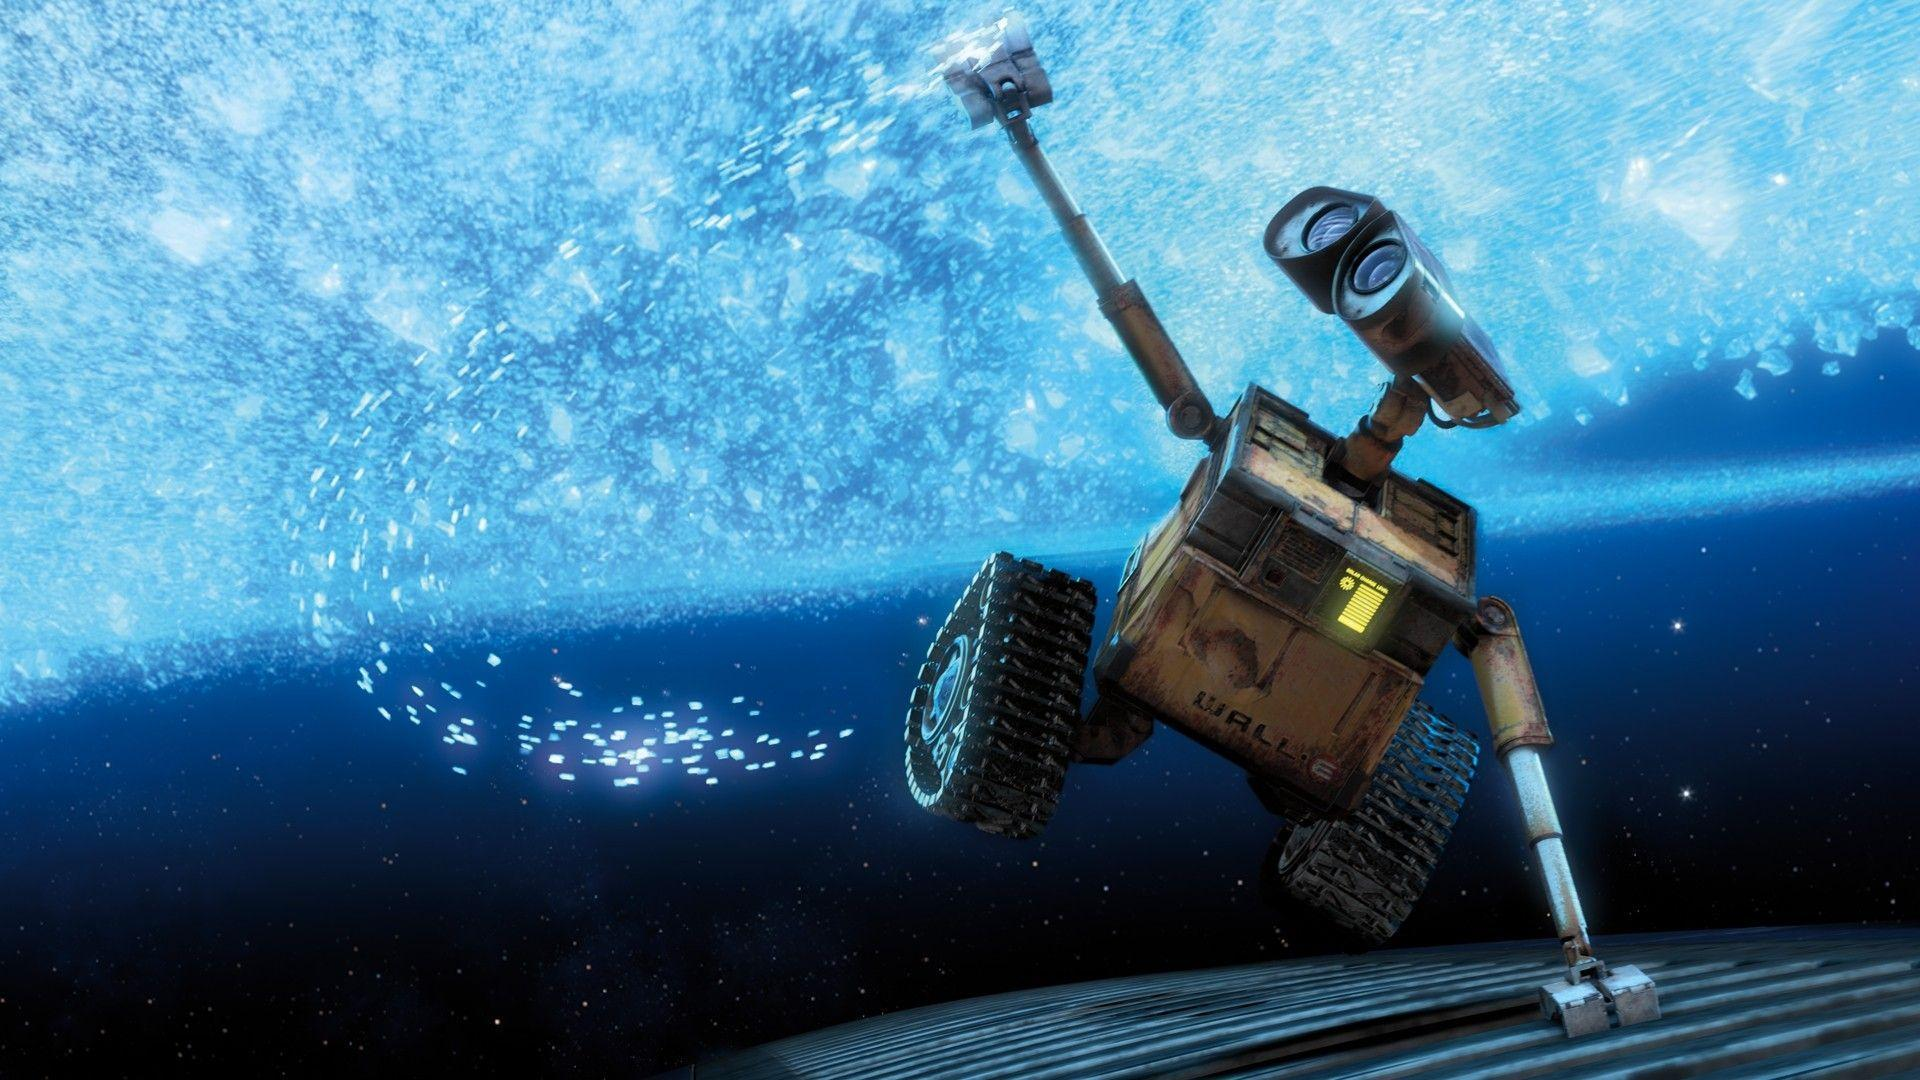 Wall E Wallpapers Wallpaper Cave